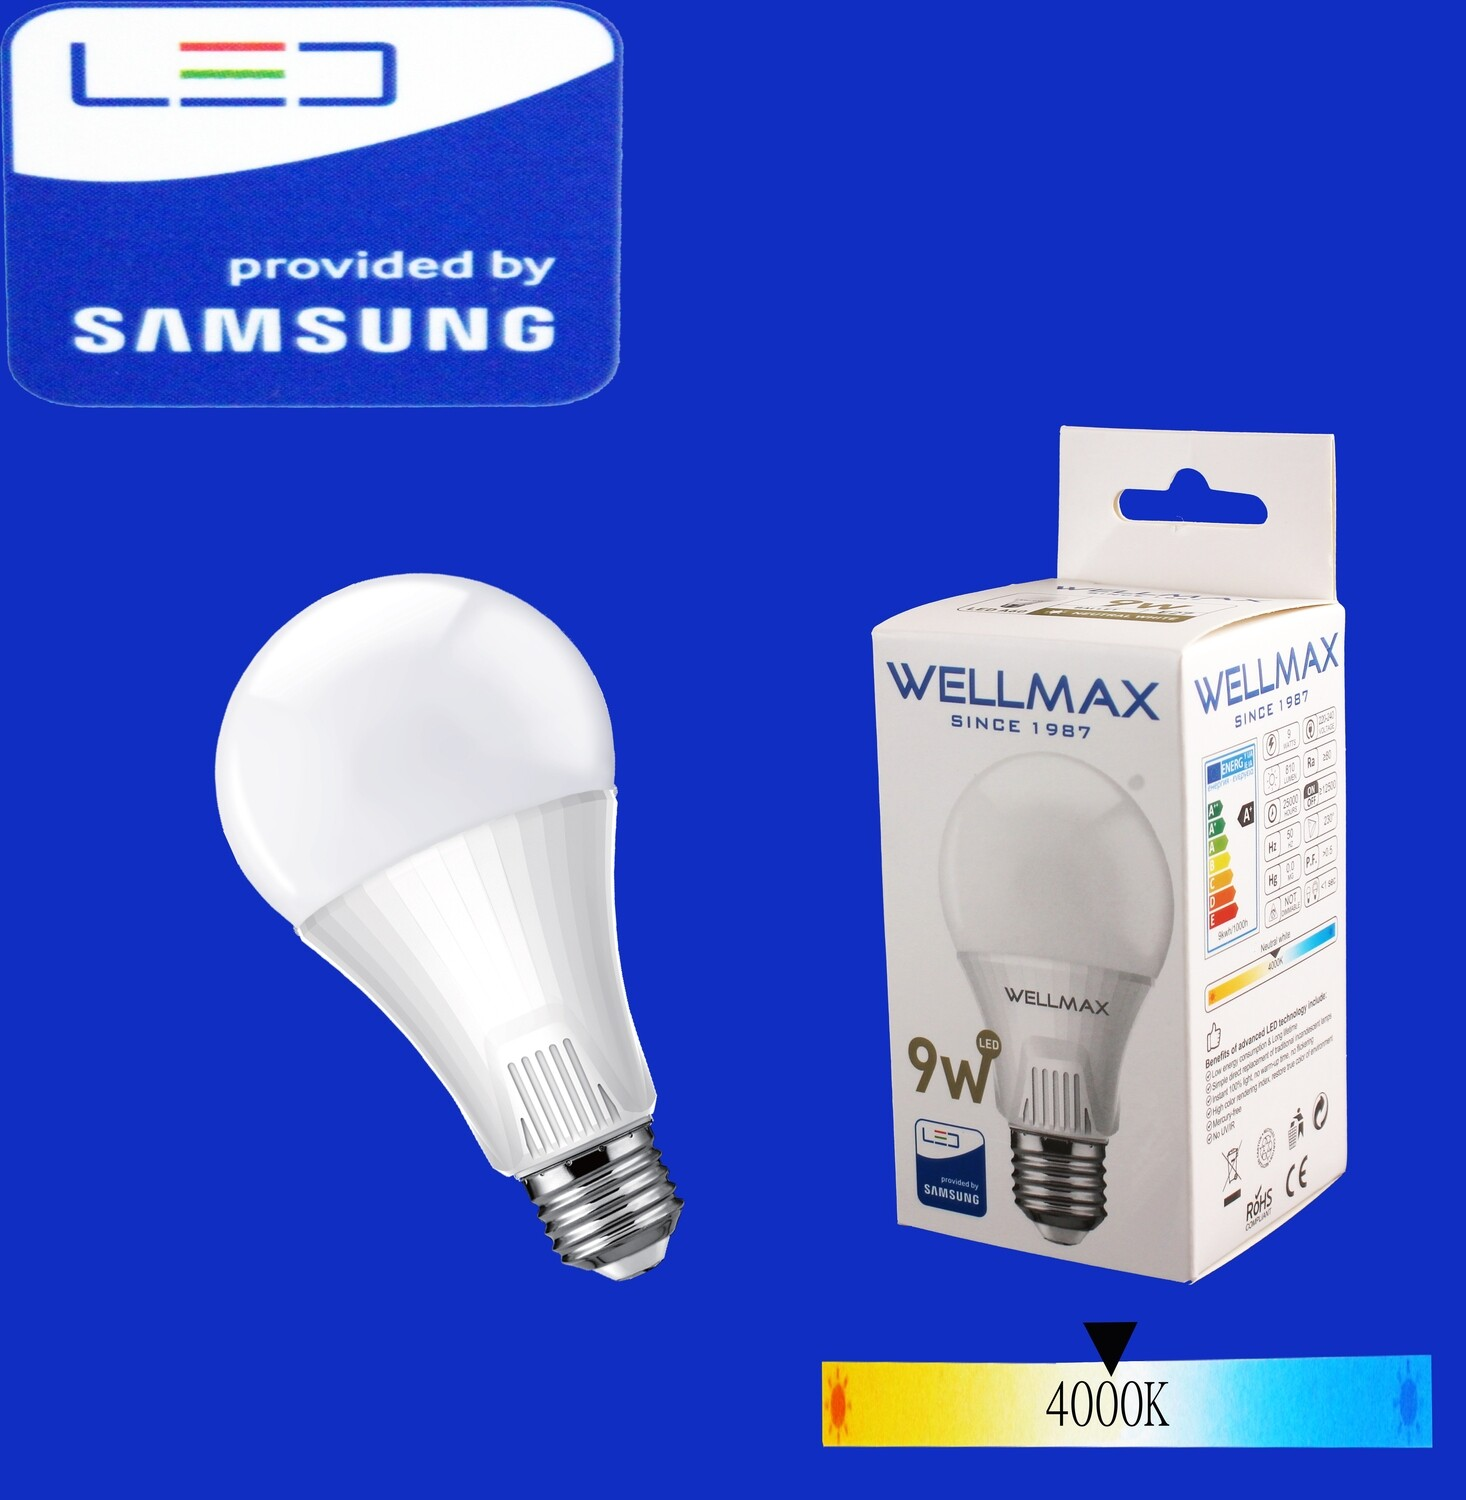 LED Լամպ Wellmax  9W neutral white A60 E27 400